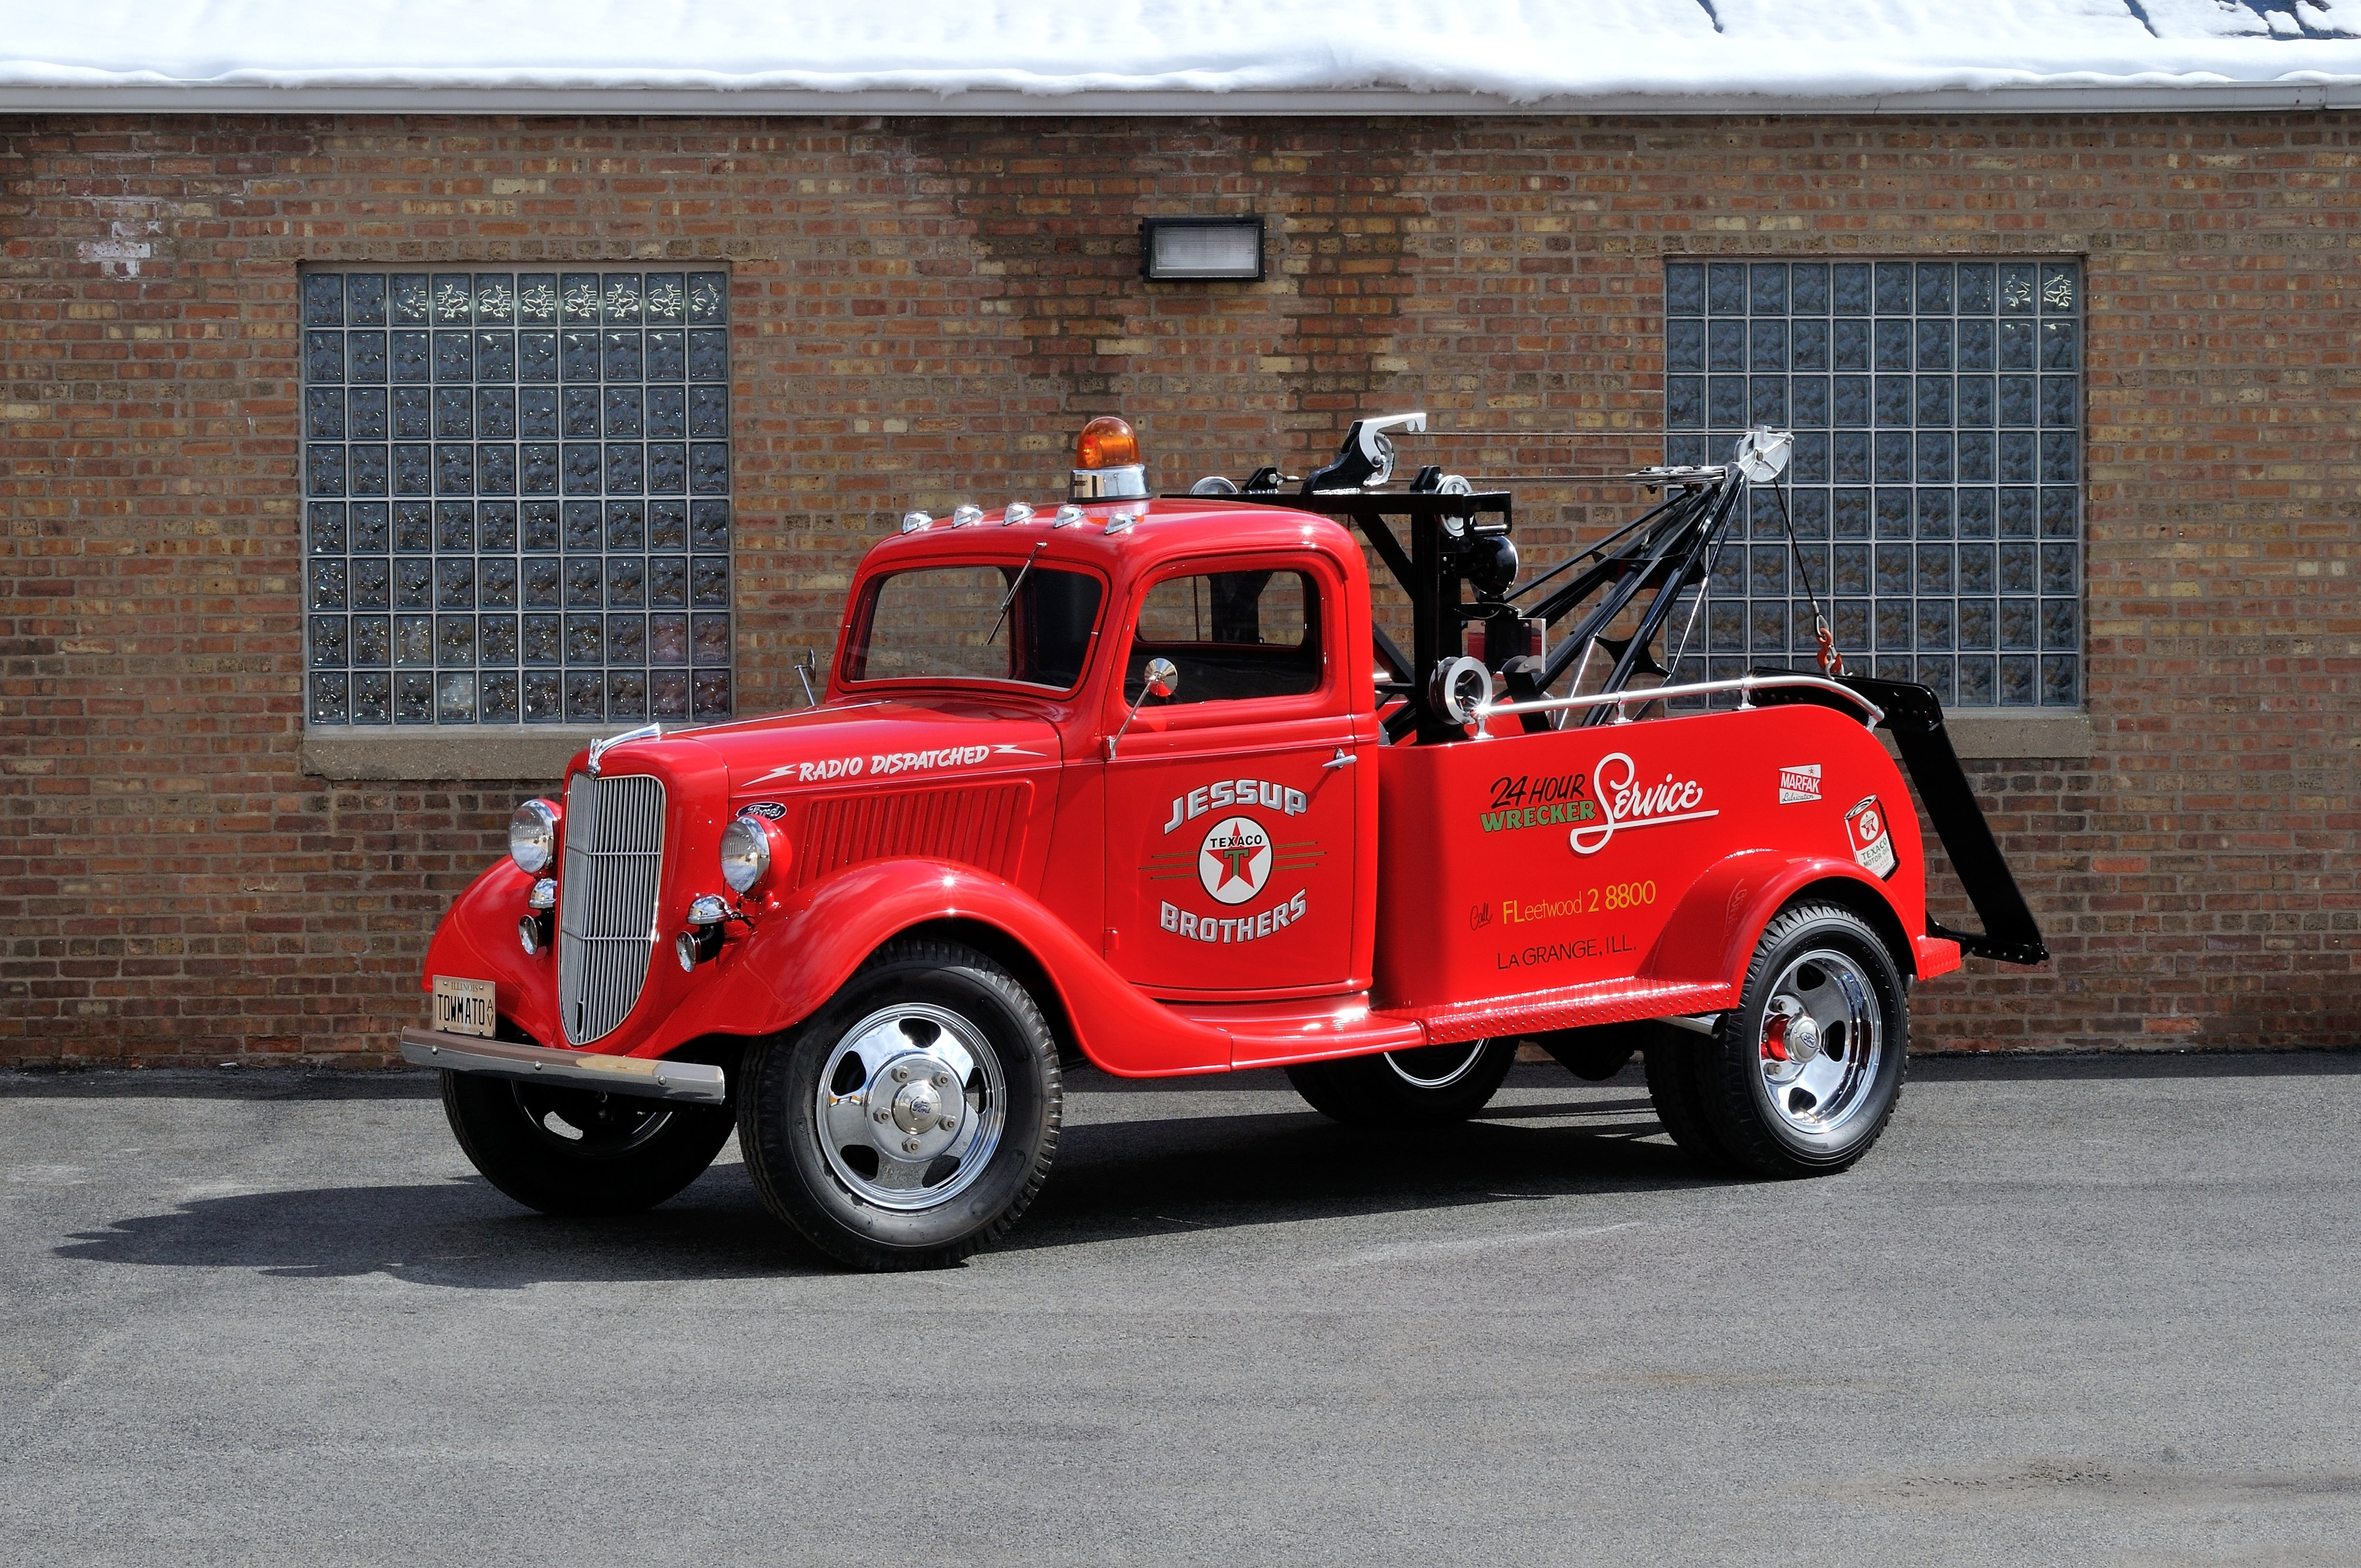 Old Ford Truck Wallpapers Many Hd Wallpaper 1955 F100 Screensaver Source 1936 Model 51 Wrecker Red Classic Retro Vintage Usa